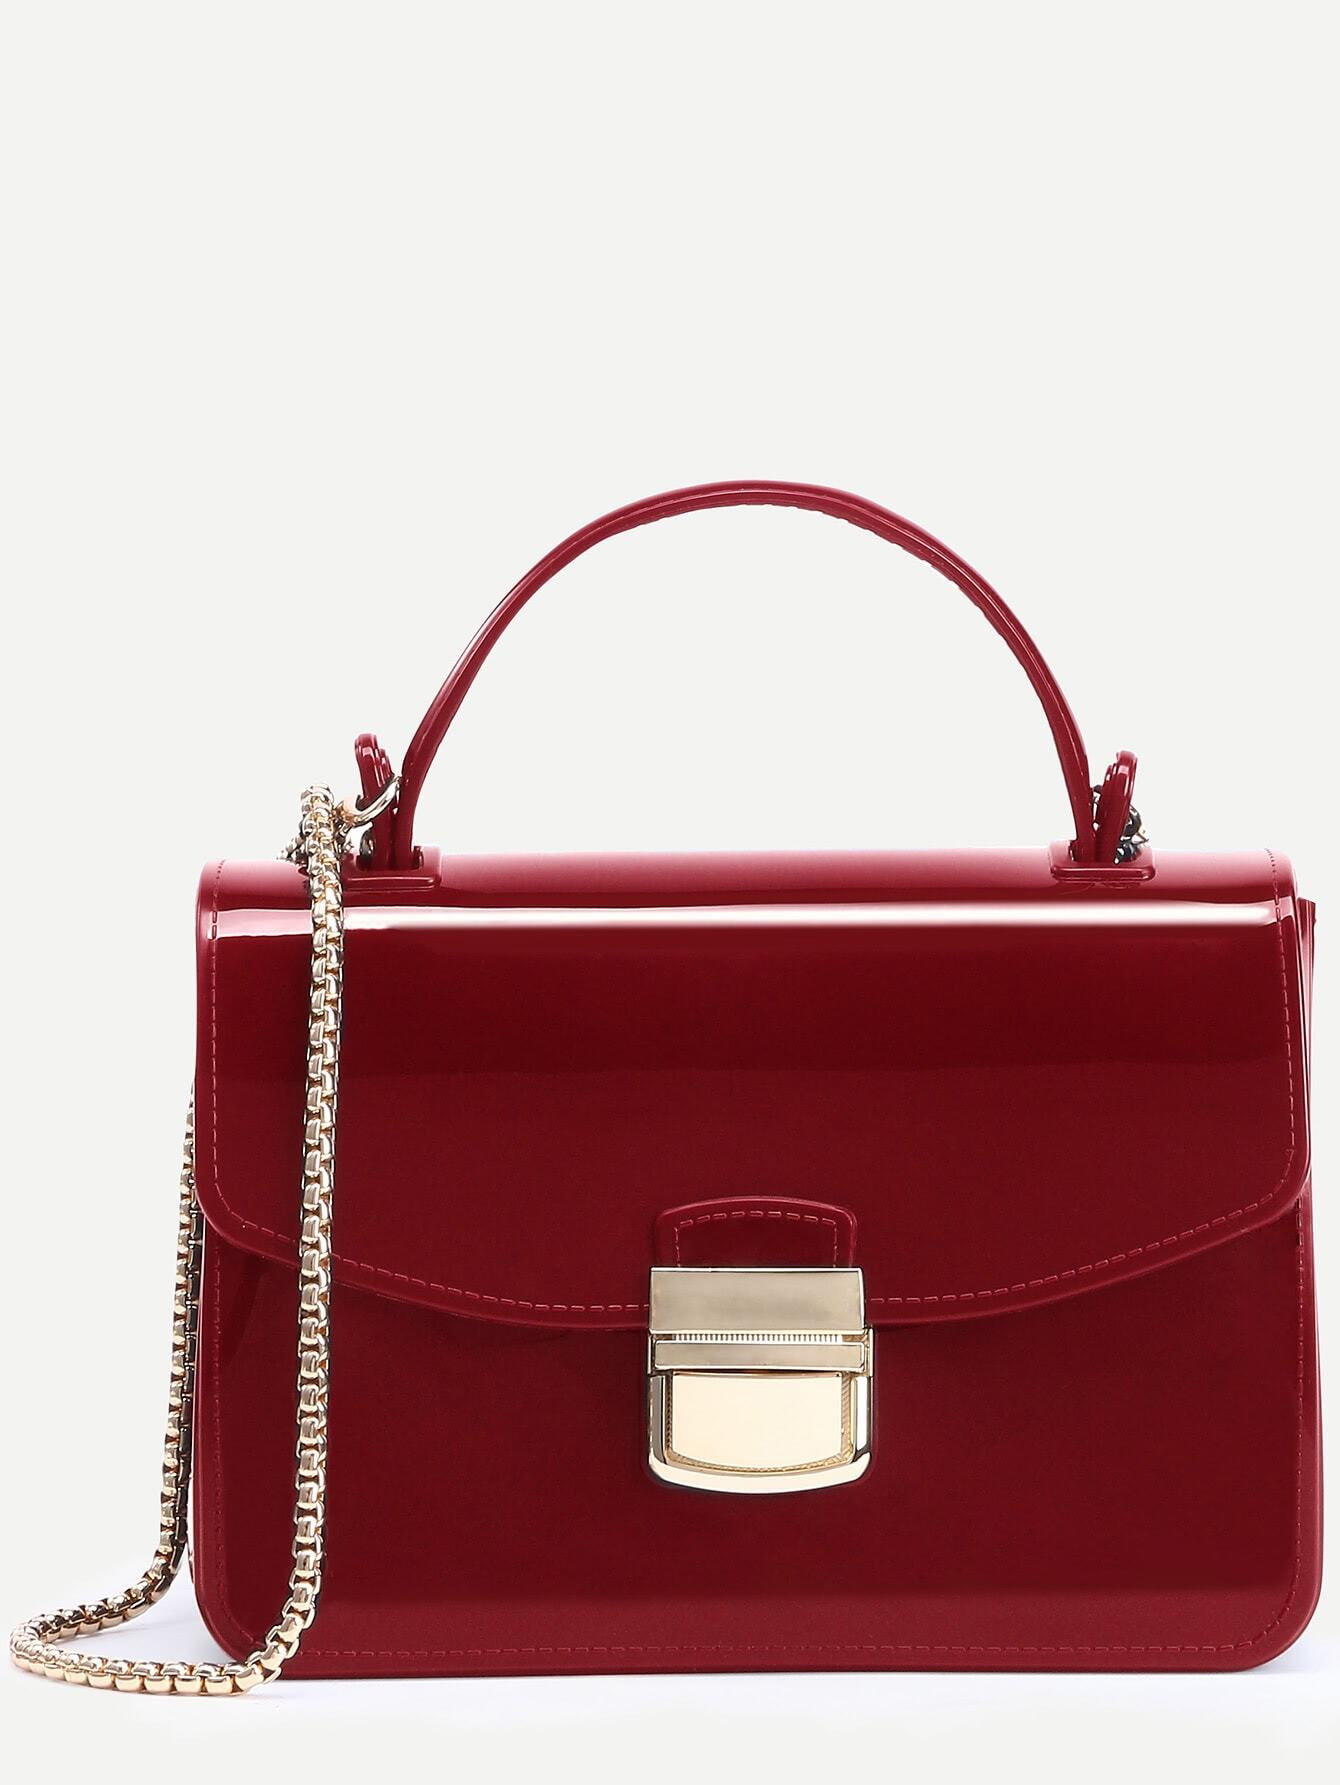 Red Pushlock Closure Plastic Handbag With Chain Image